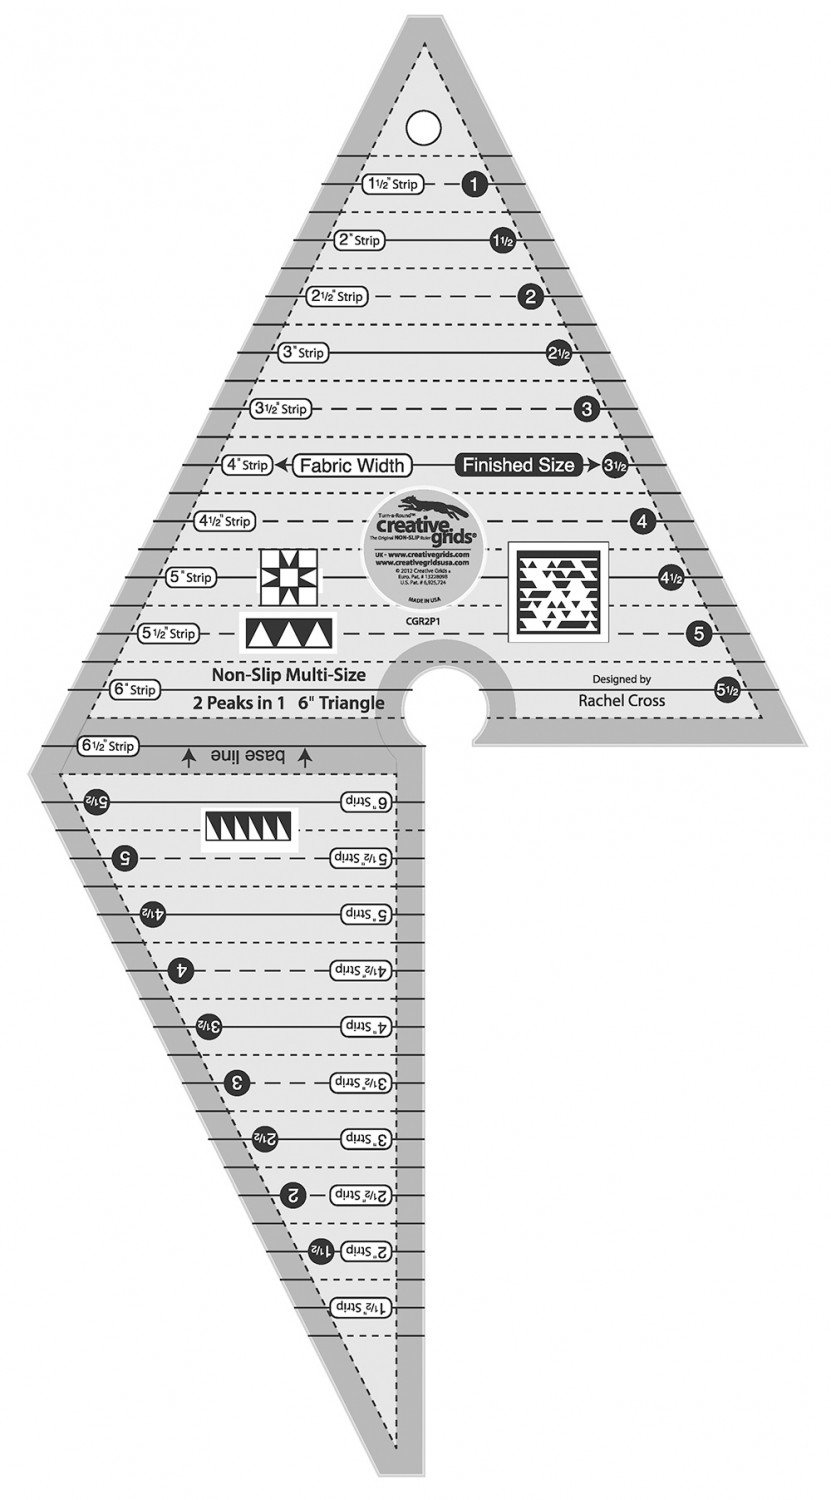 Creative Grids 2 Peaks in 1 Triangle Ruler